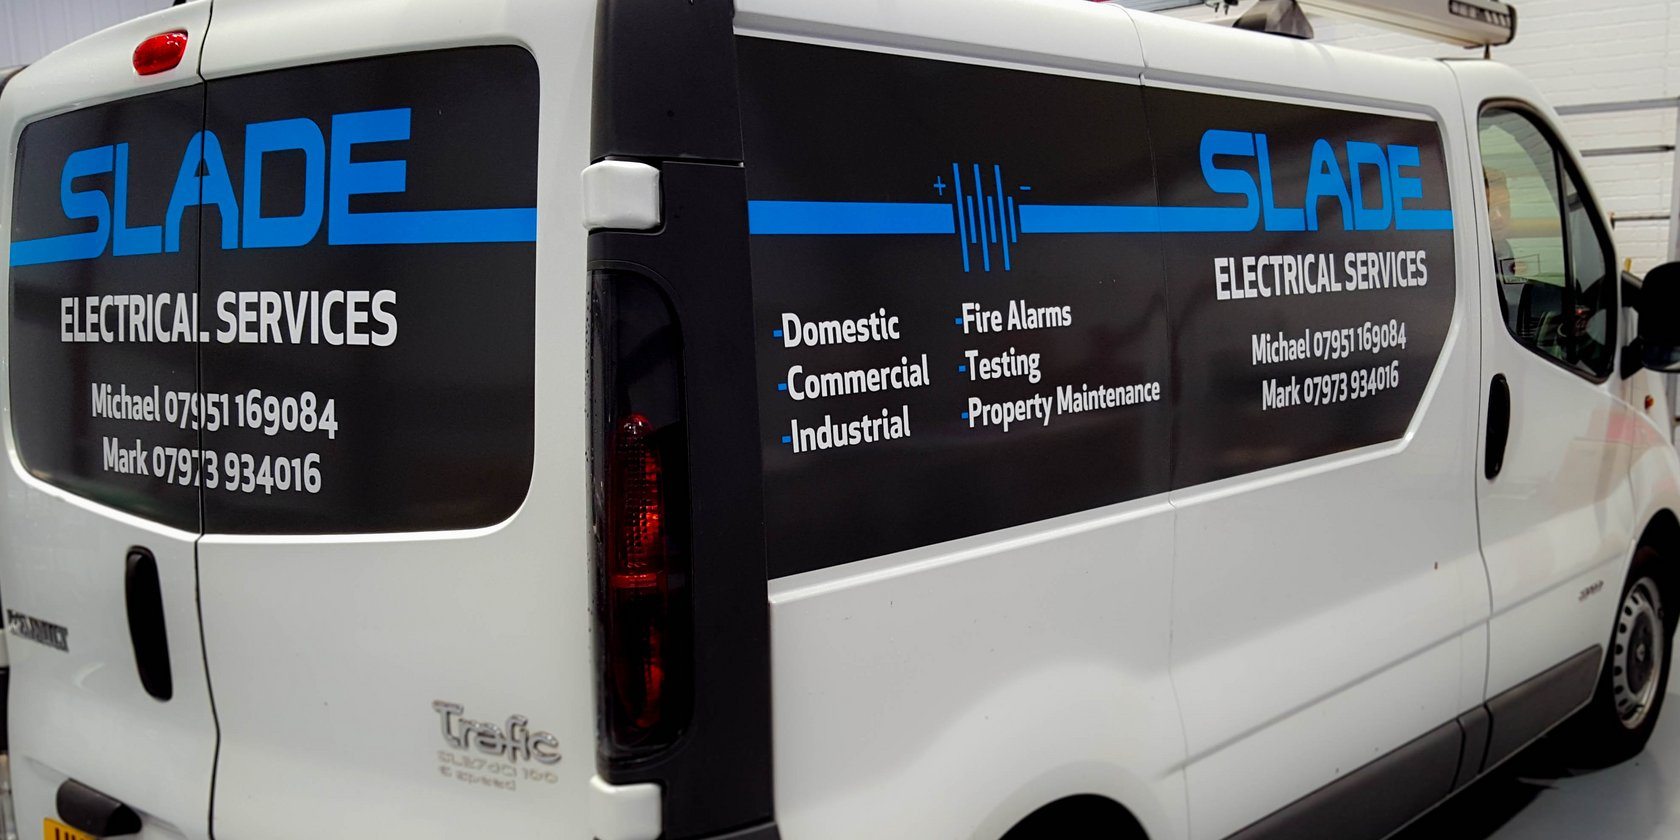 Slade Electrical Services Van Graphics